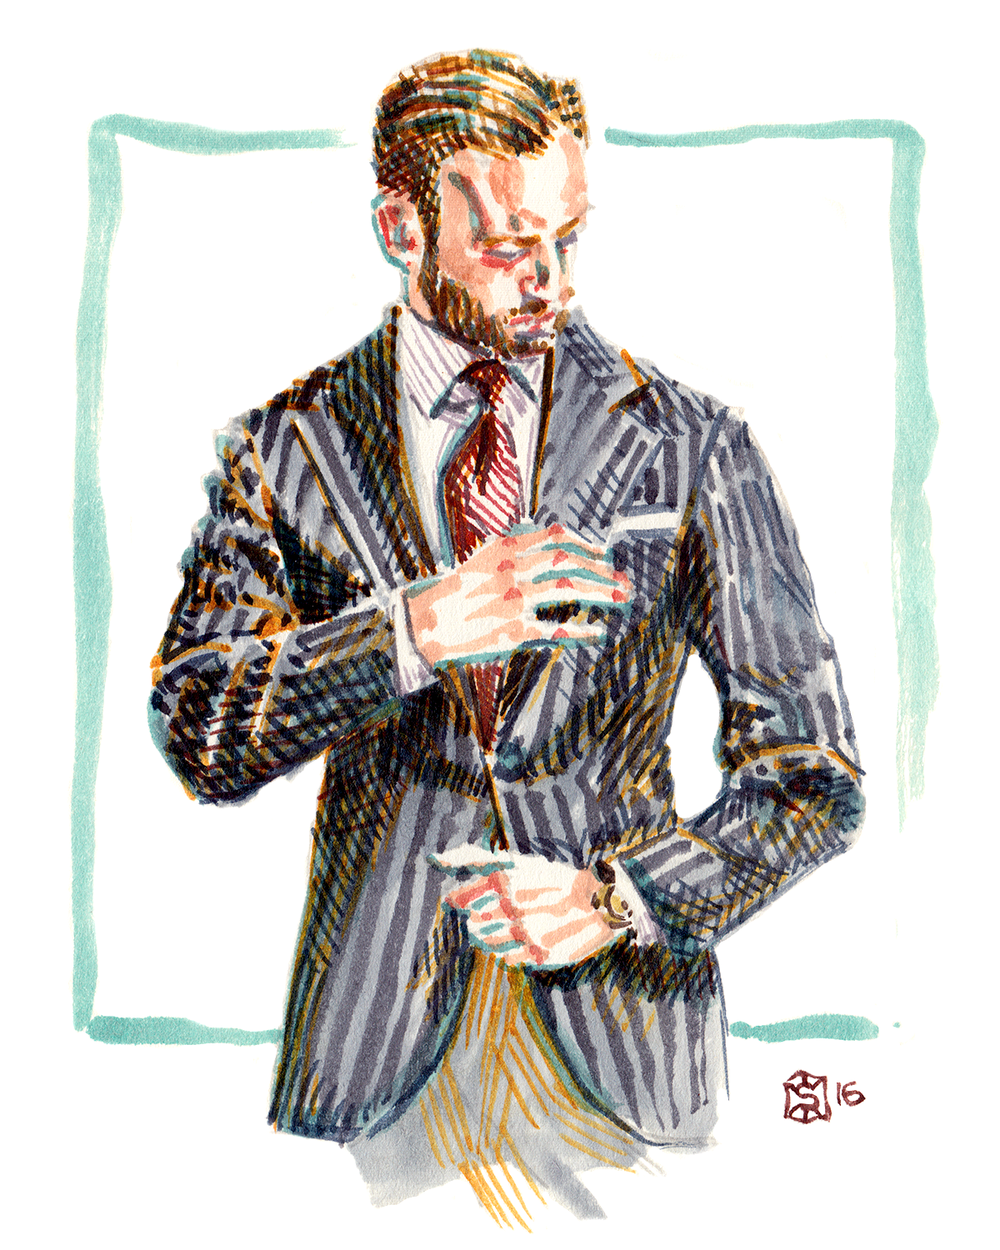 Illustrated menswear portrait of Andreas Weinas